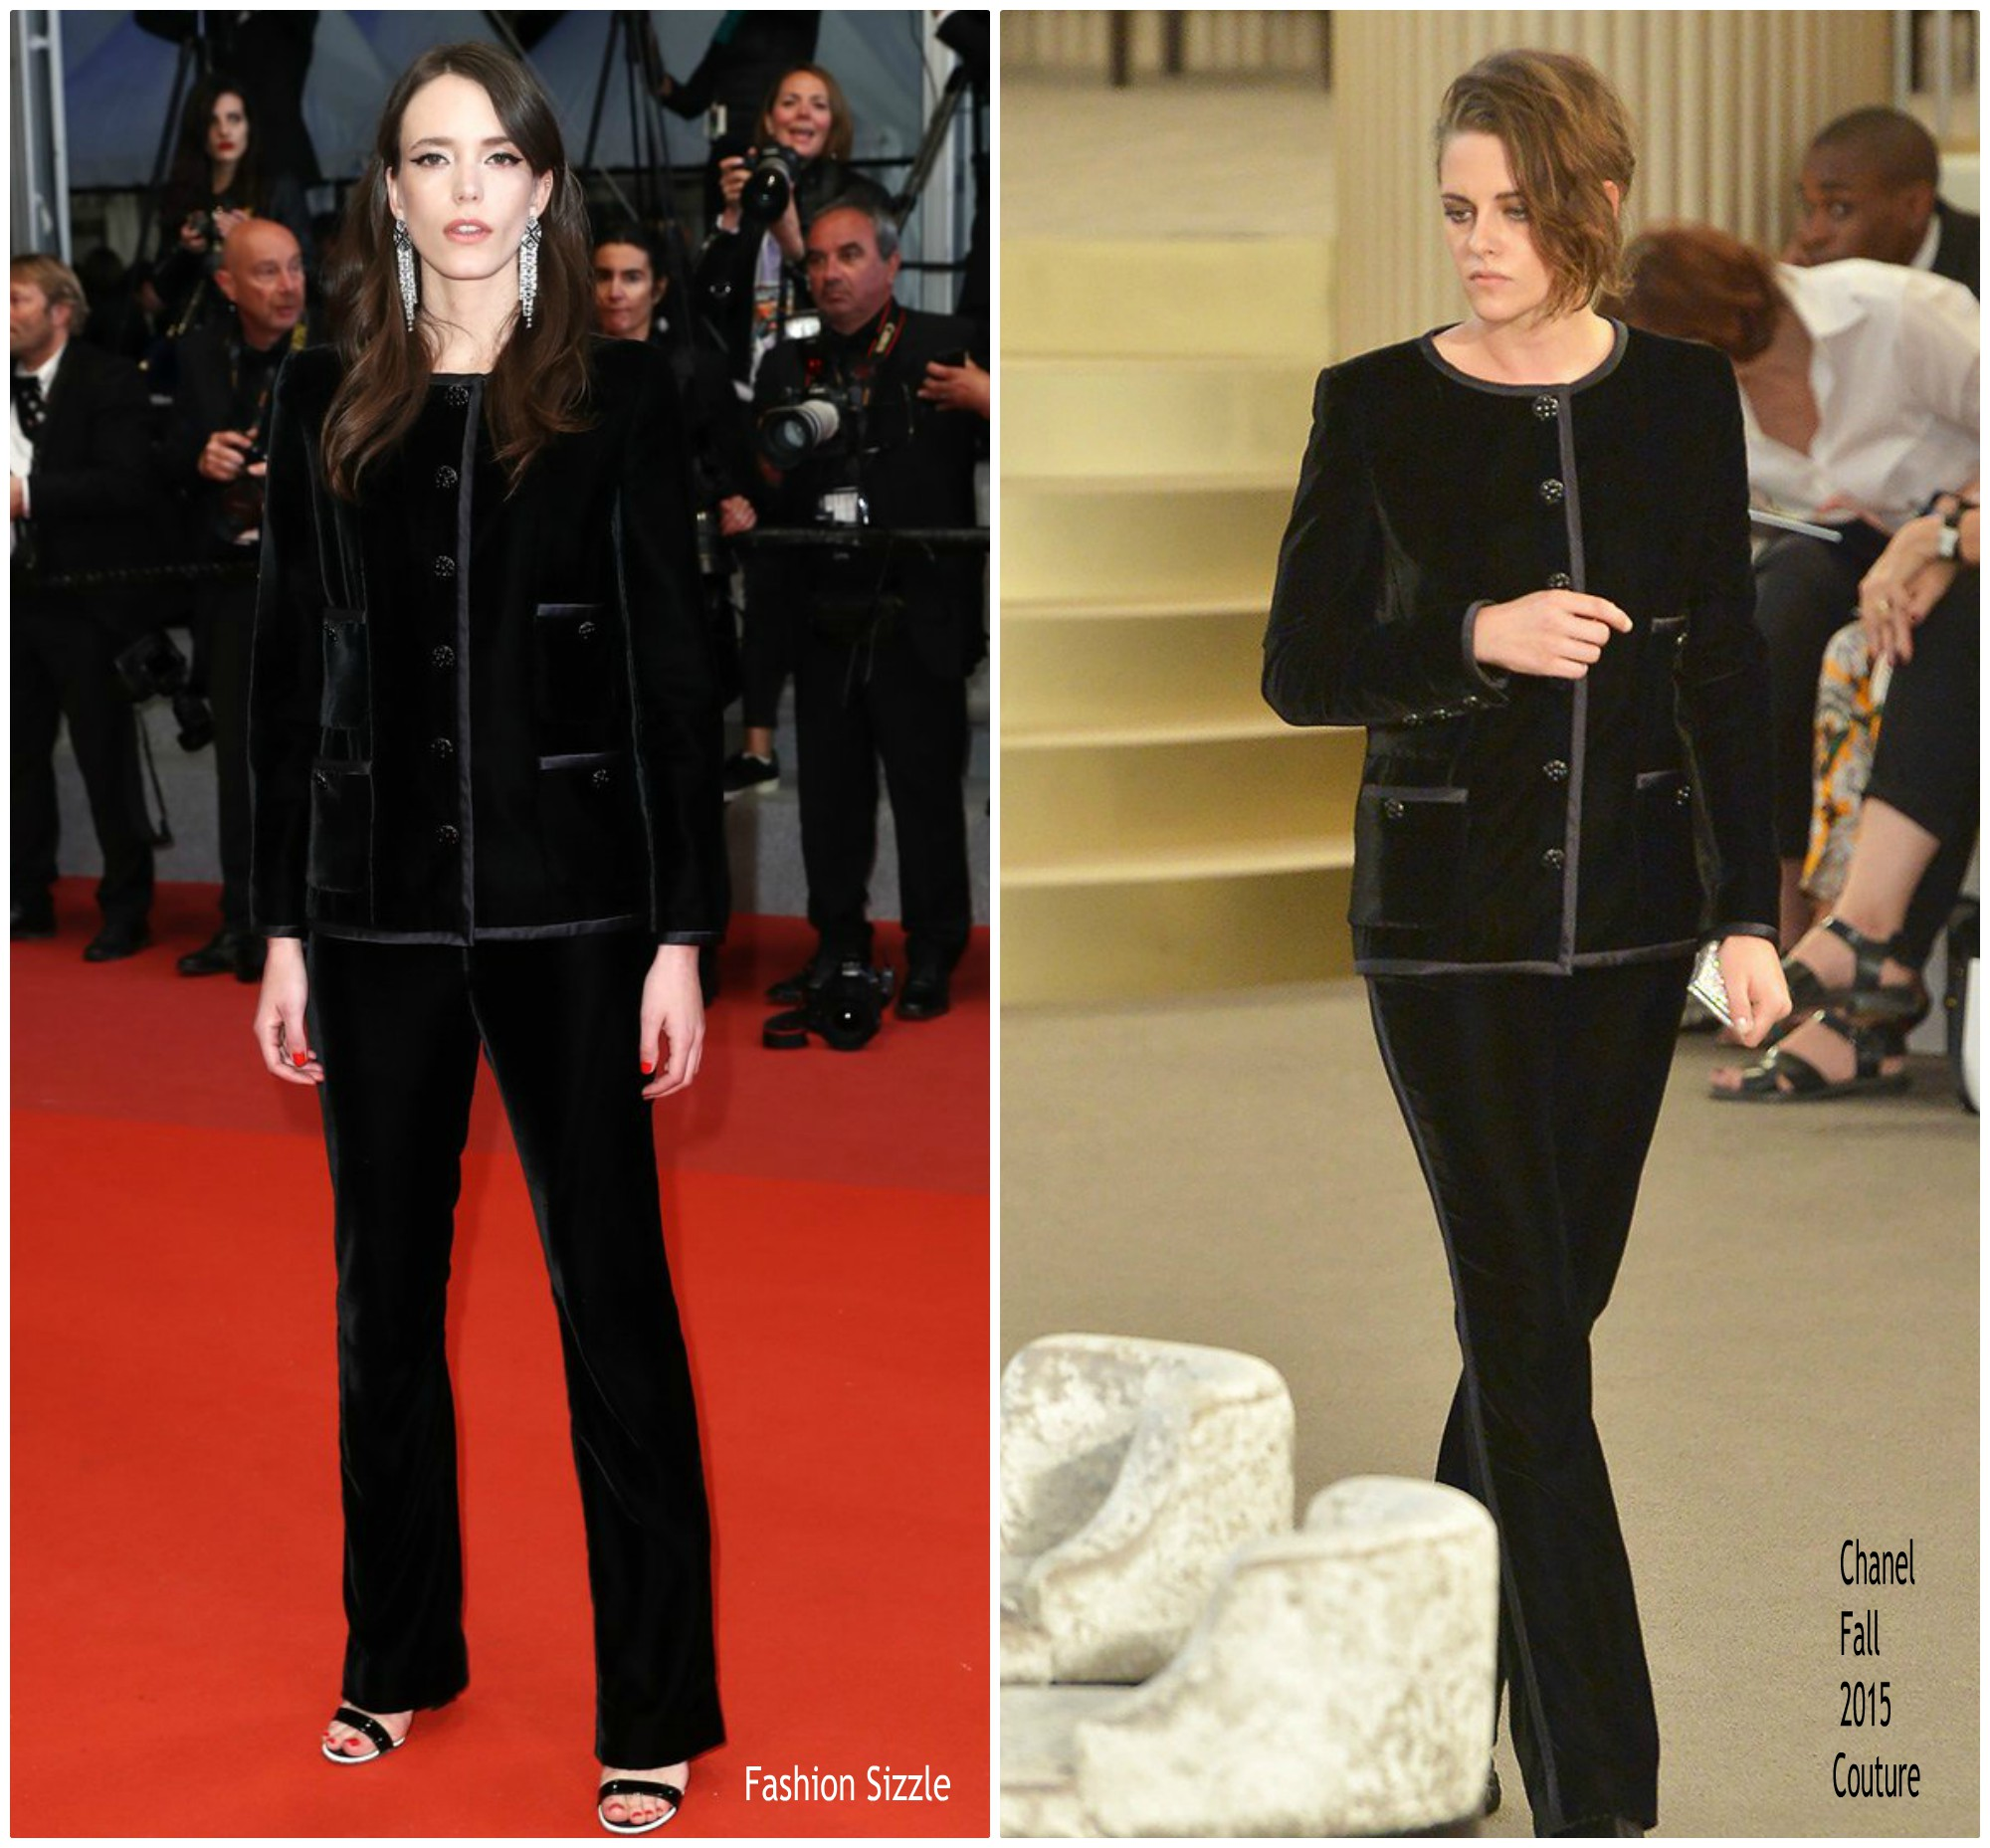 stacy-martin-in-chanel-couture-the-house-that-jack-built-cannes-film-festival-premiere